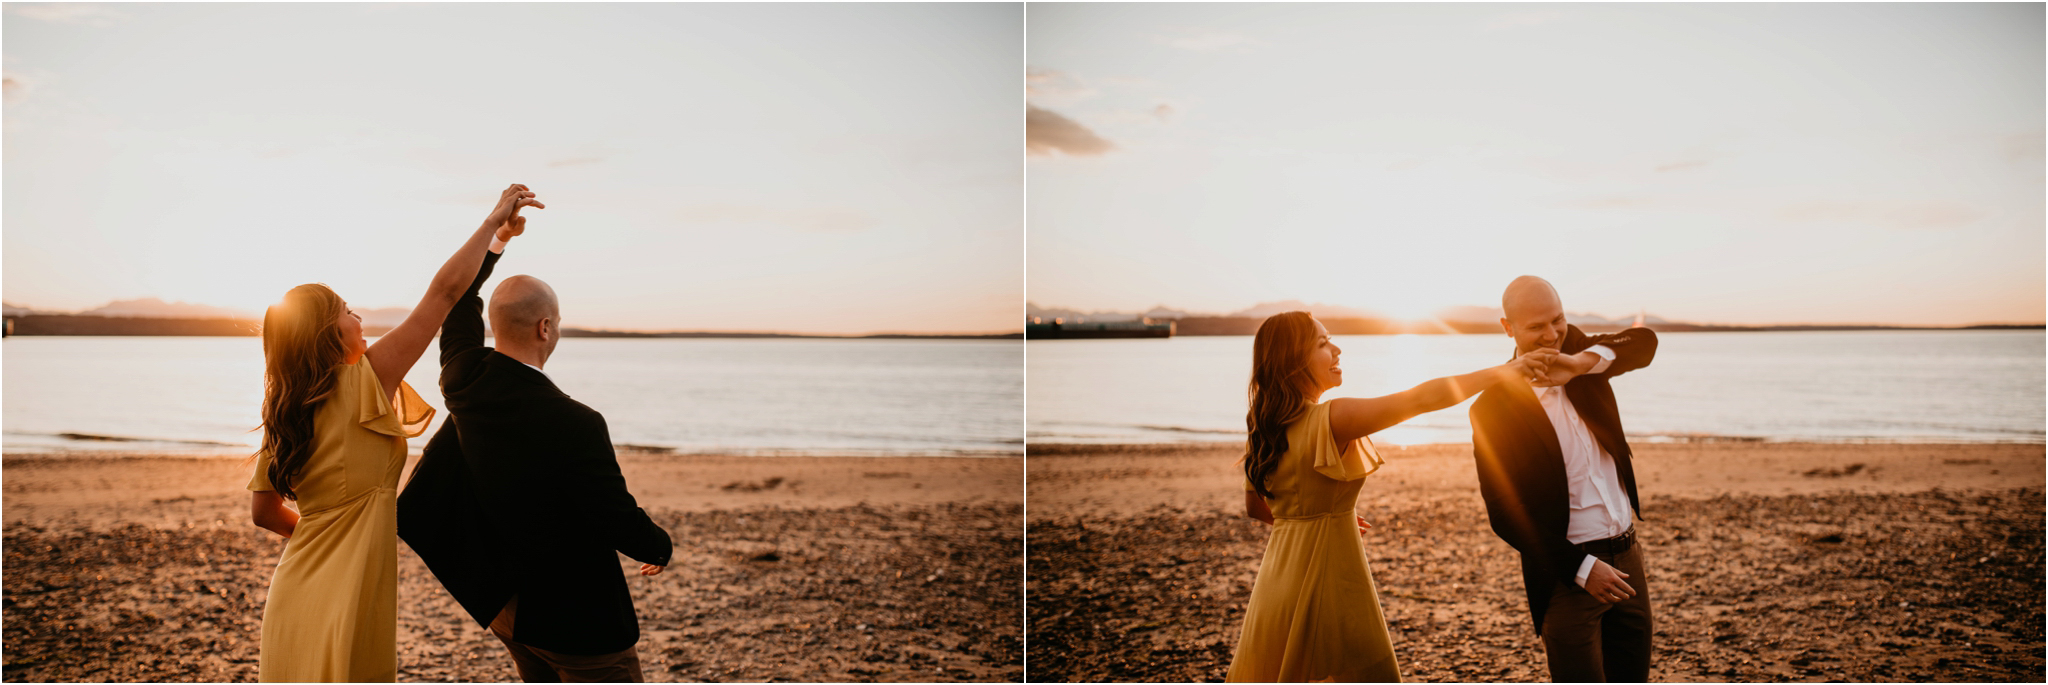 thuy-and-andrew-discovery-park-seattle-beach-engagement-session-034.jpg